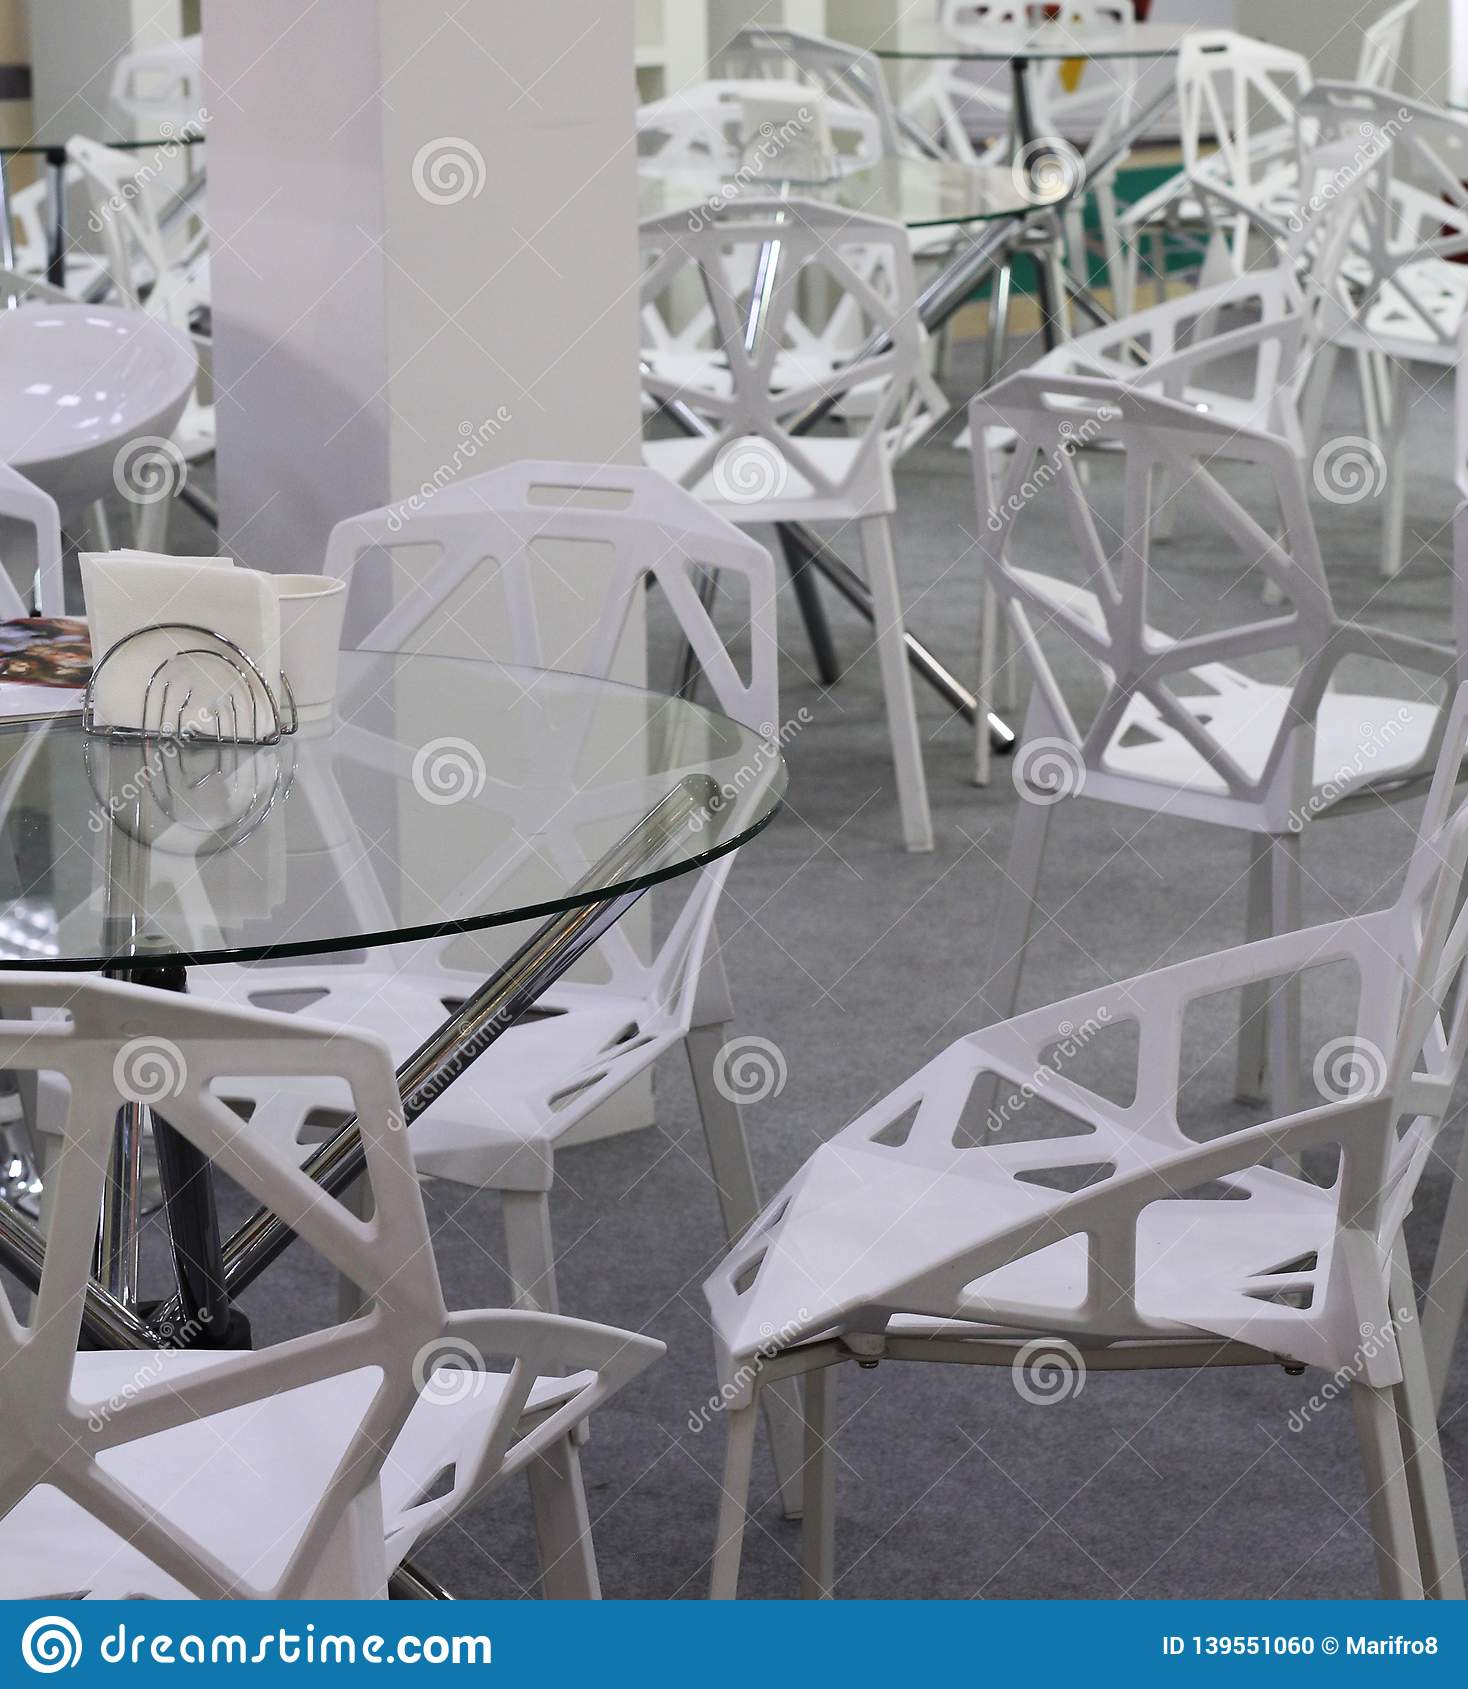 Chairs and tables for meeting rooms or cozy cafes